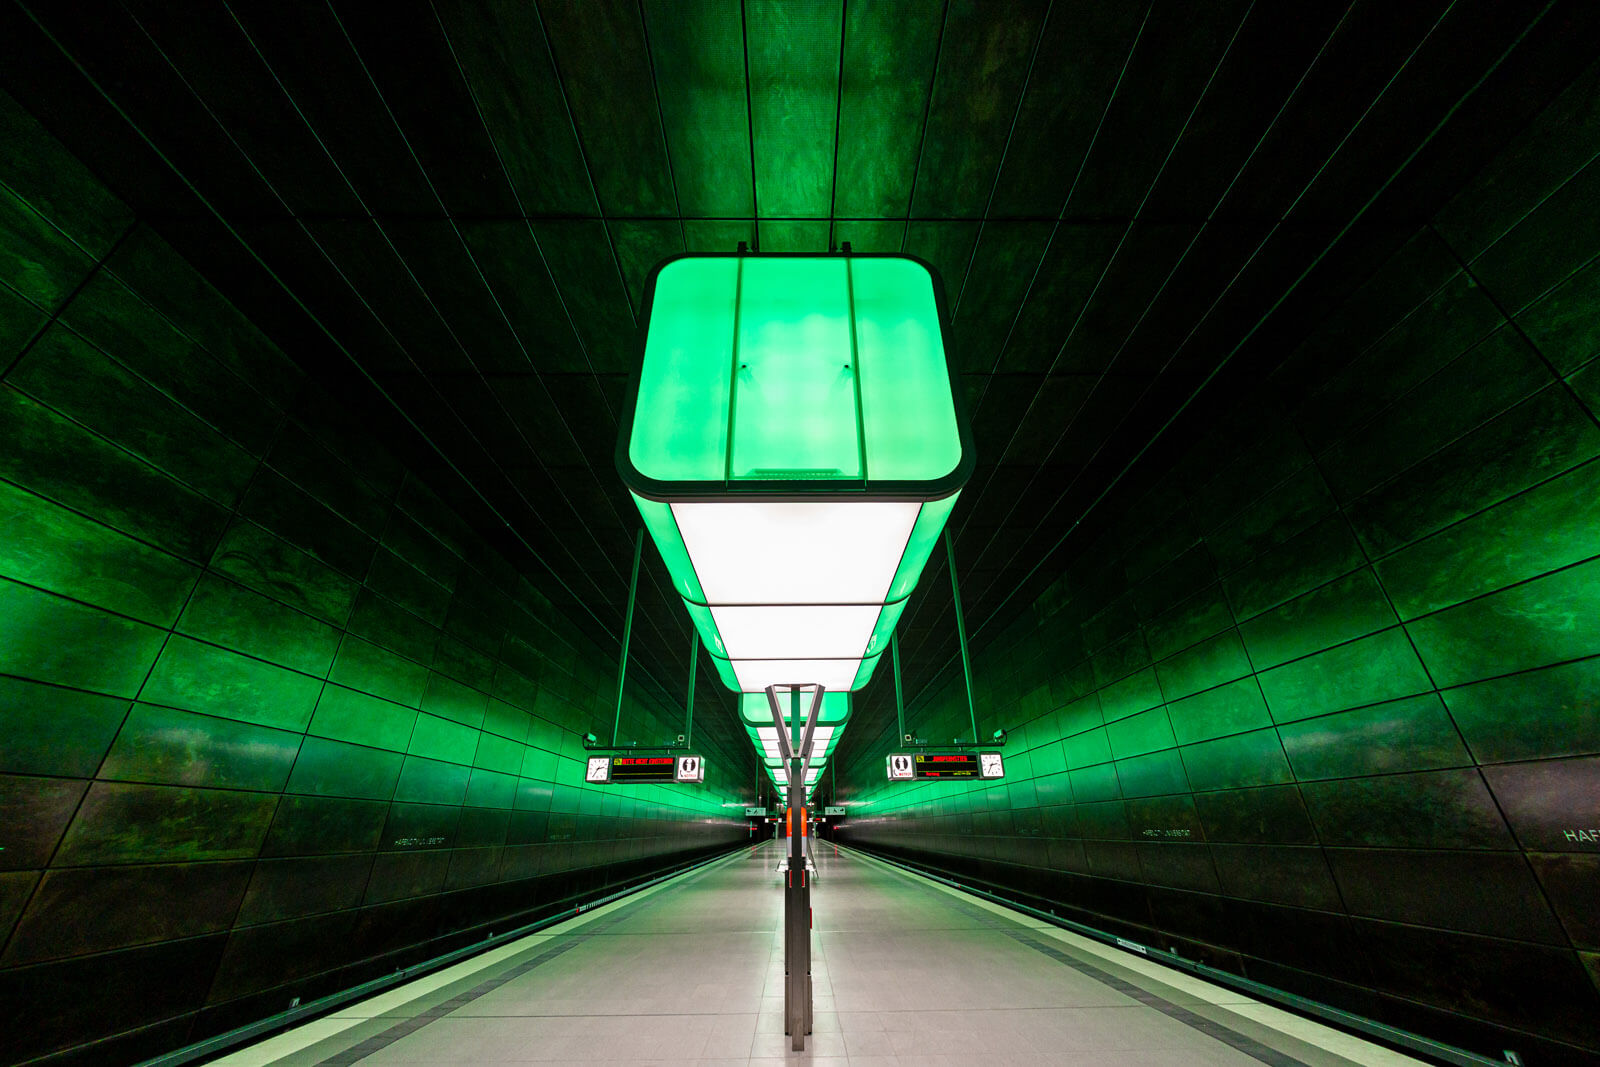 Illumination der U-Bahnstation Hafencity Universität in Hamburg